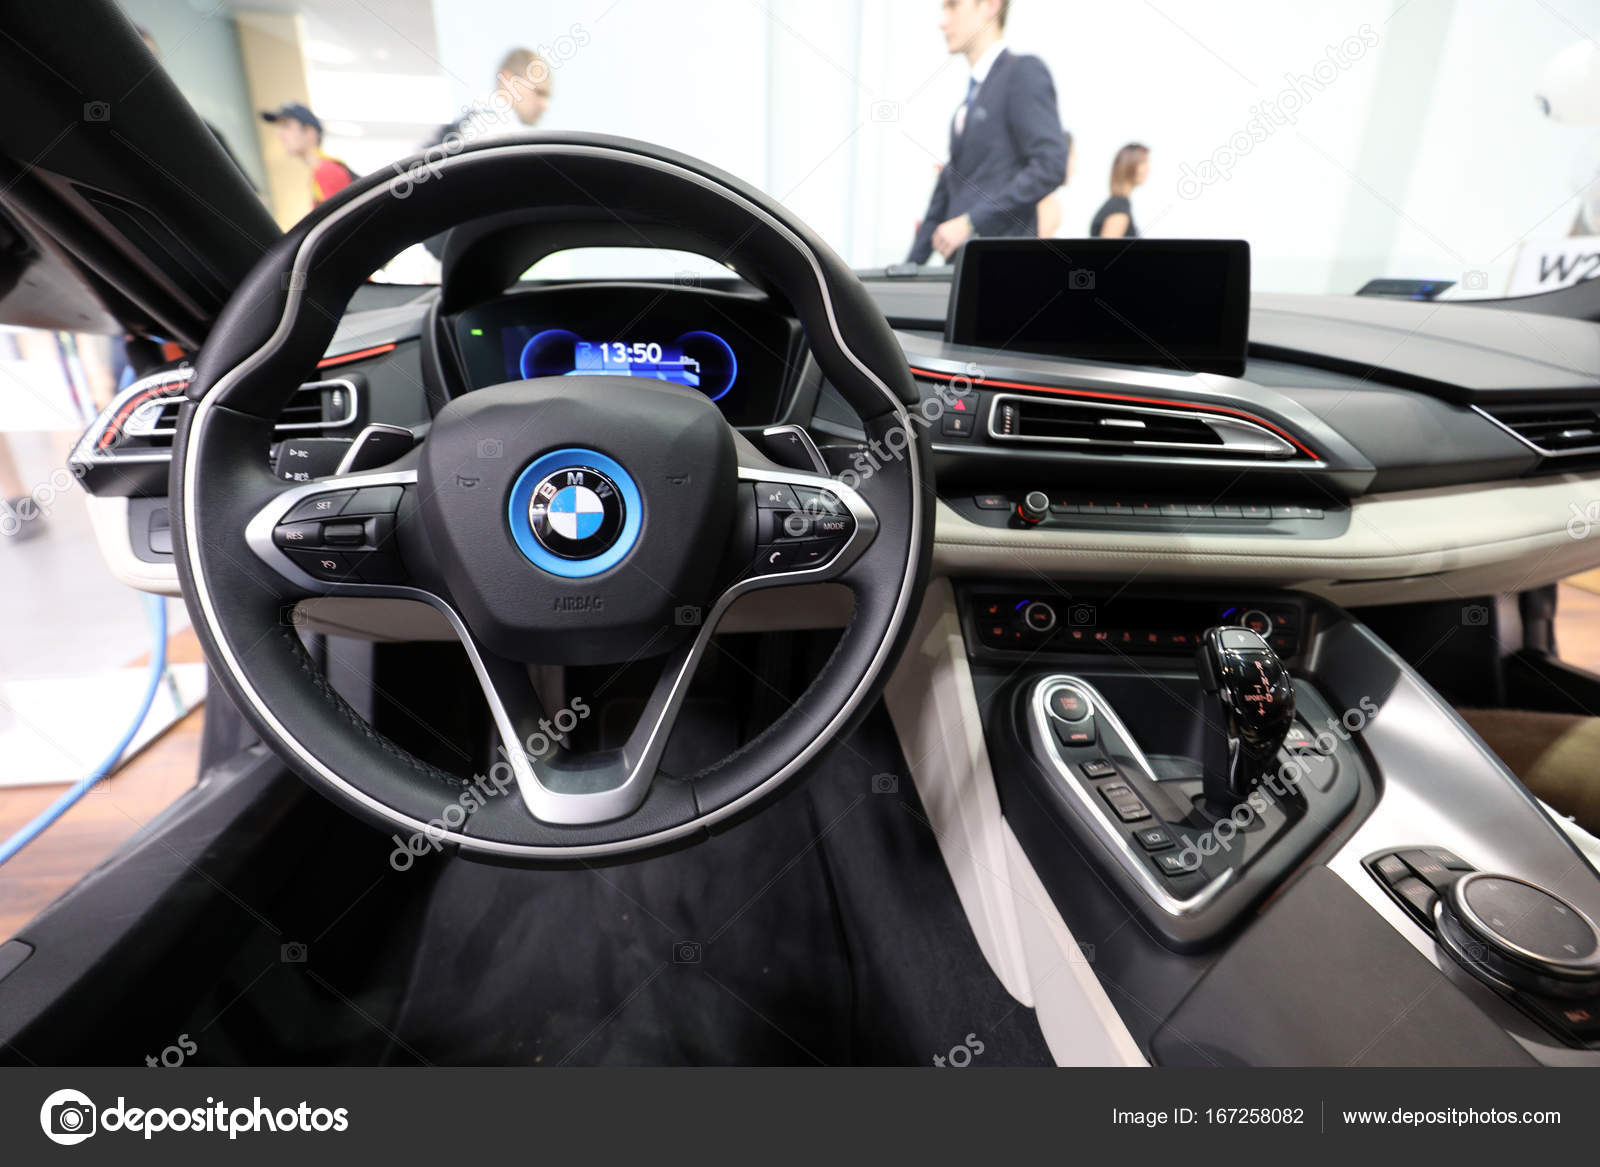 Bmw I8 Interieur Interior Design Of Bmw I8 Displayed At Moto Show In Cracow Poland